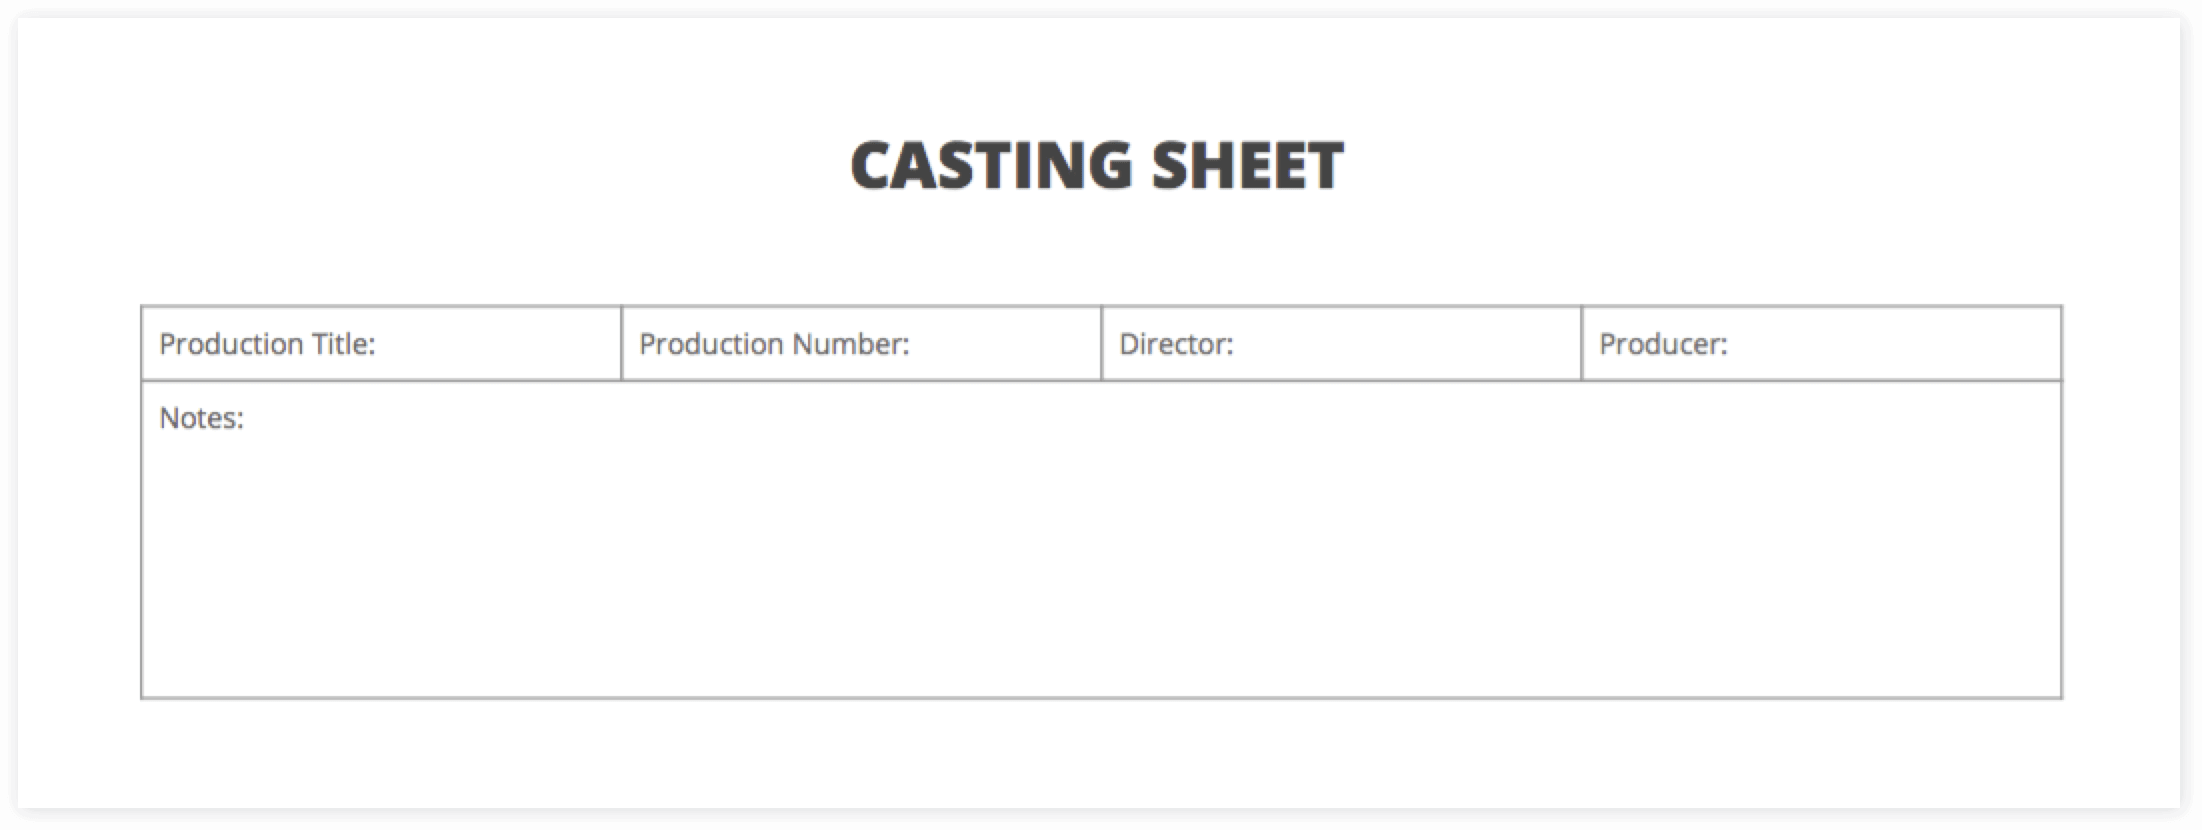 The Ultimate Guide To Casting Auditions Free Casting Sheet Template